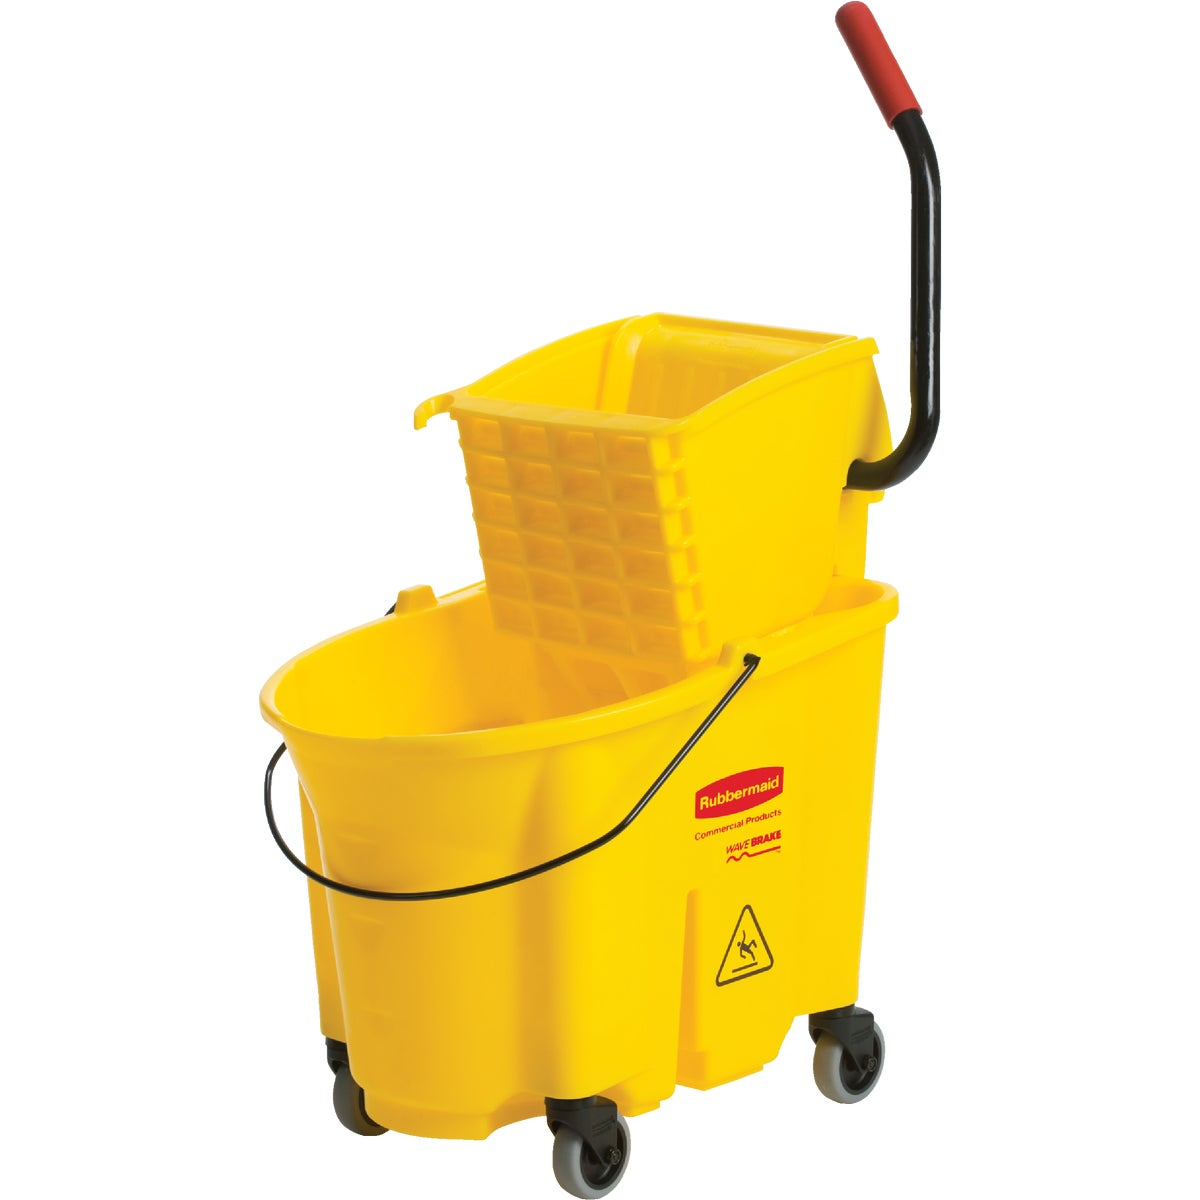 MOP BUCKET W/WRINGER - FG758088YEL by Rubbermaid Comm Prod